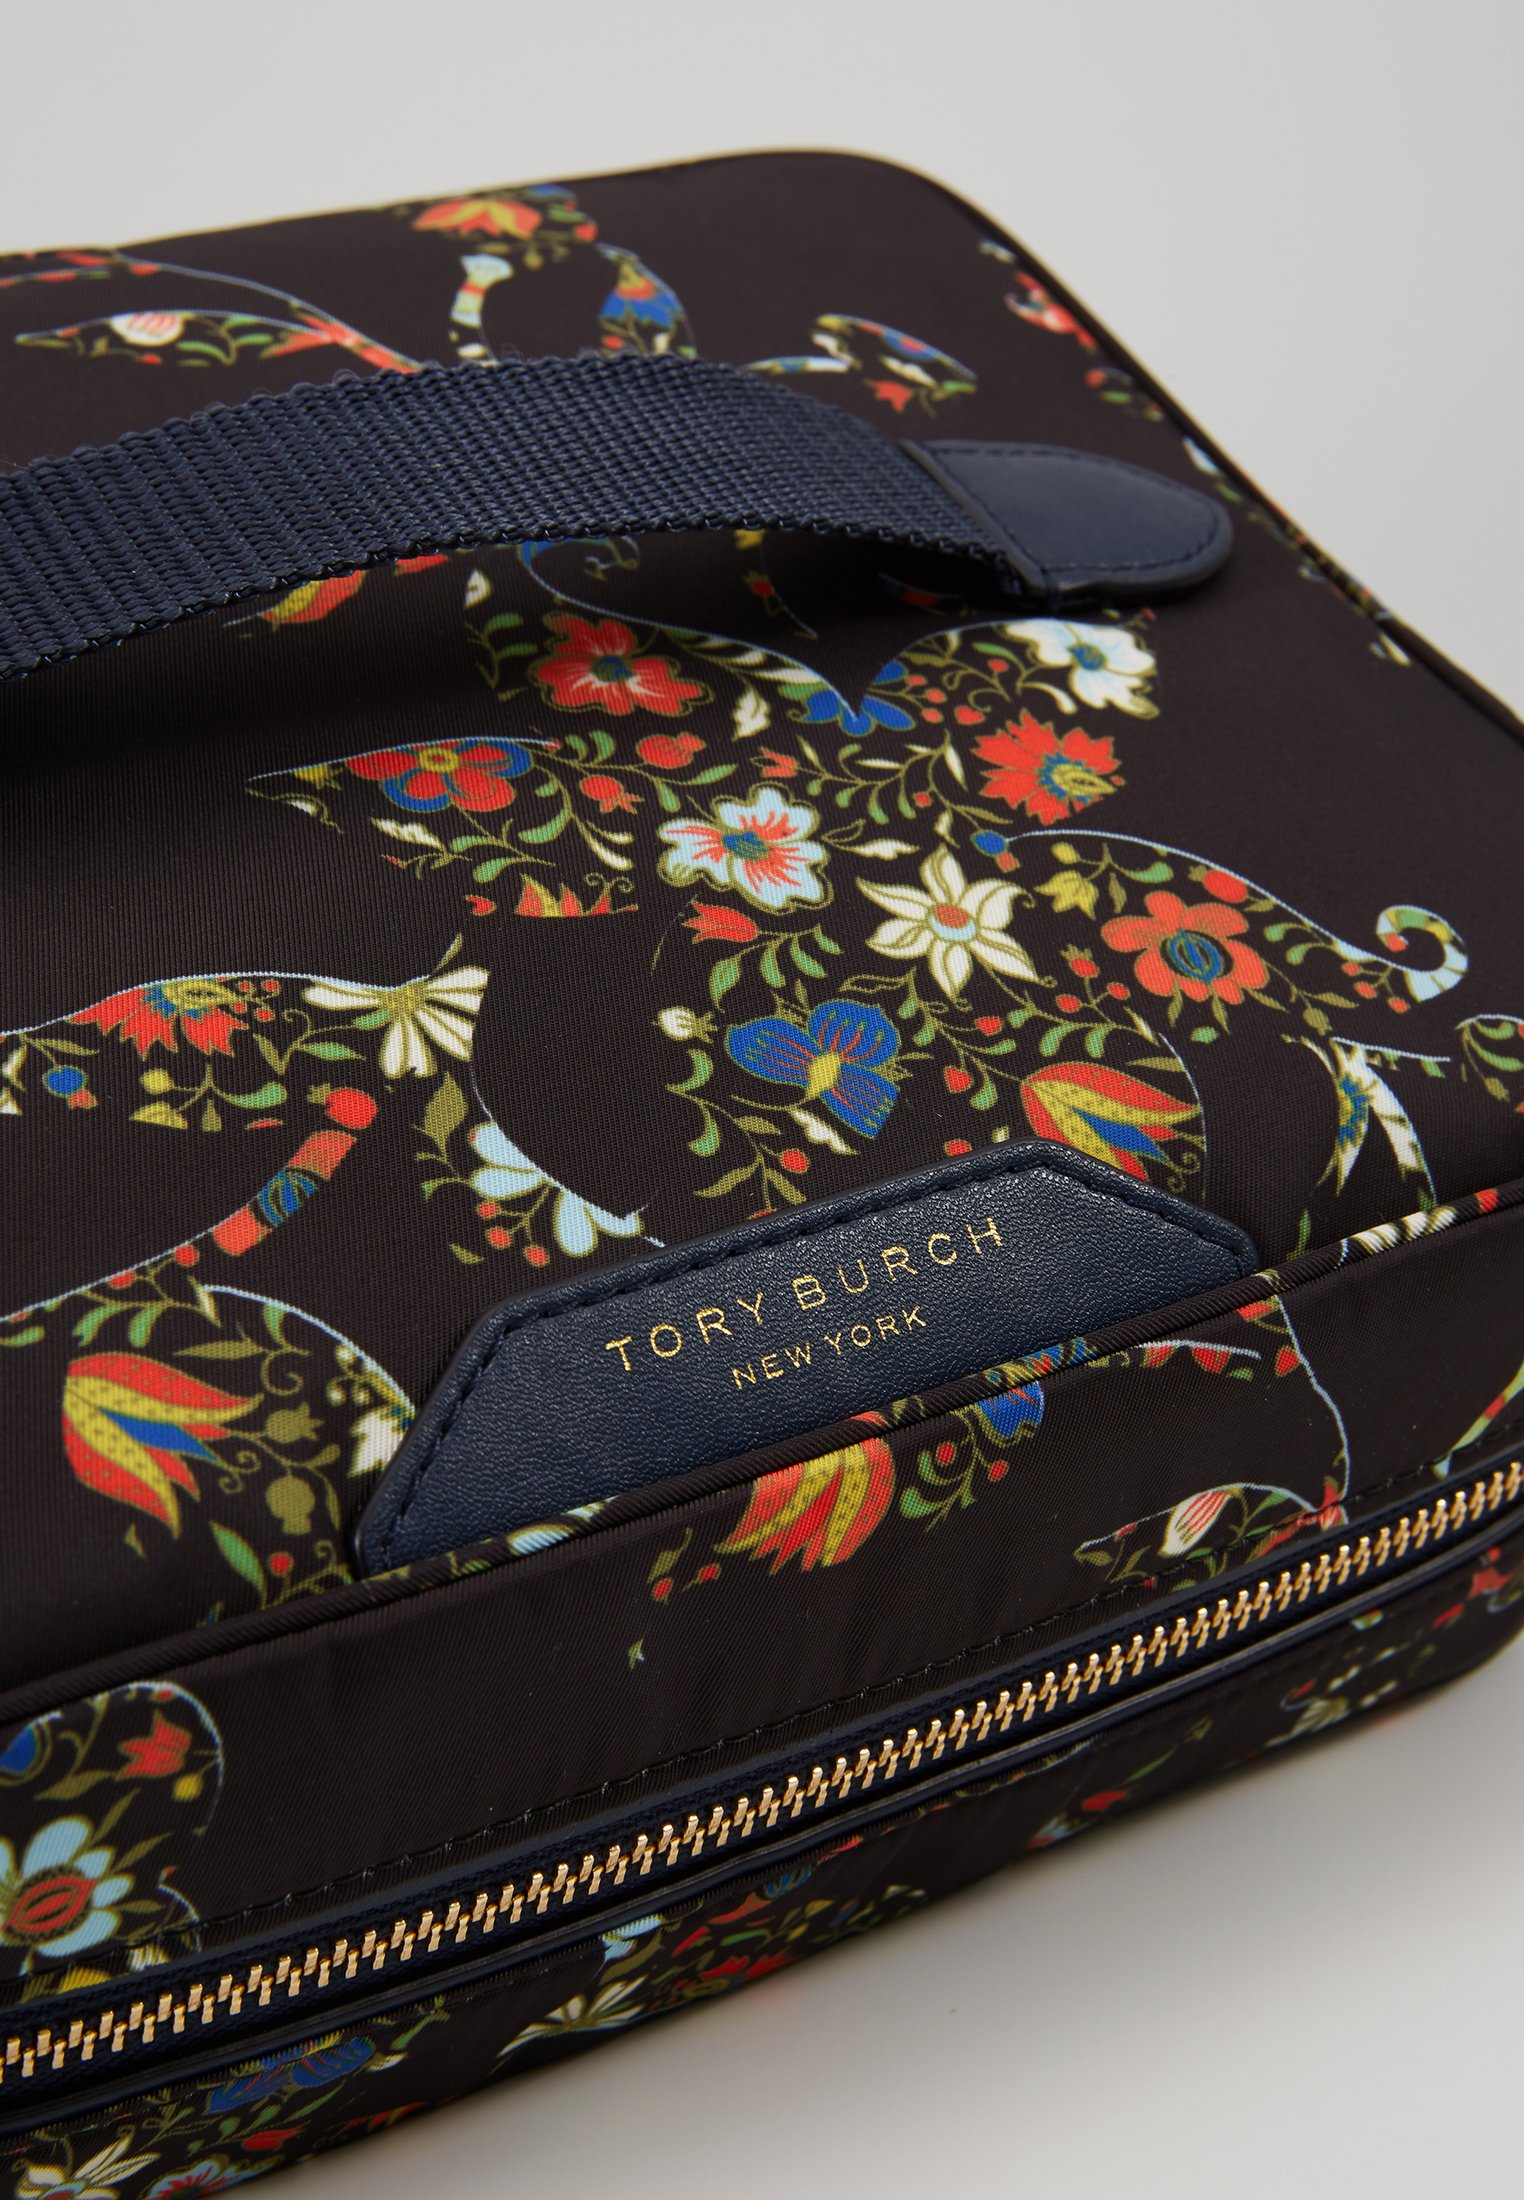 Tory Burch Perry Nylon Printed Cosmetic Set - Trousse Sacred Floral